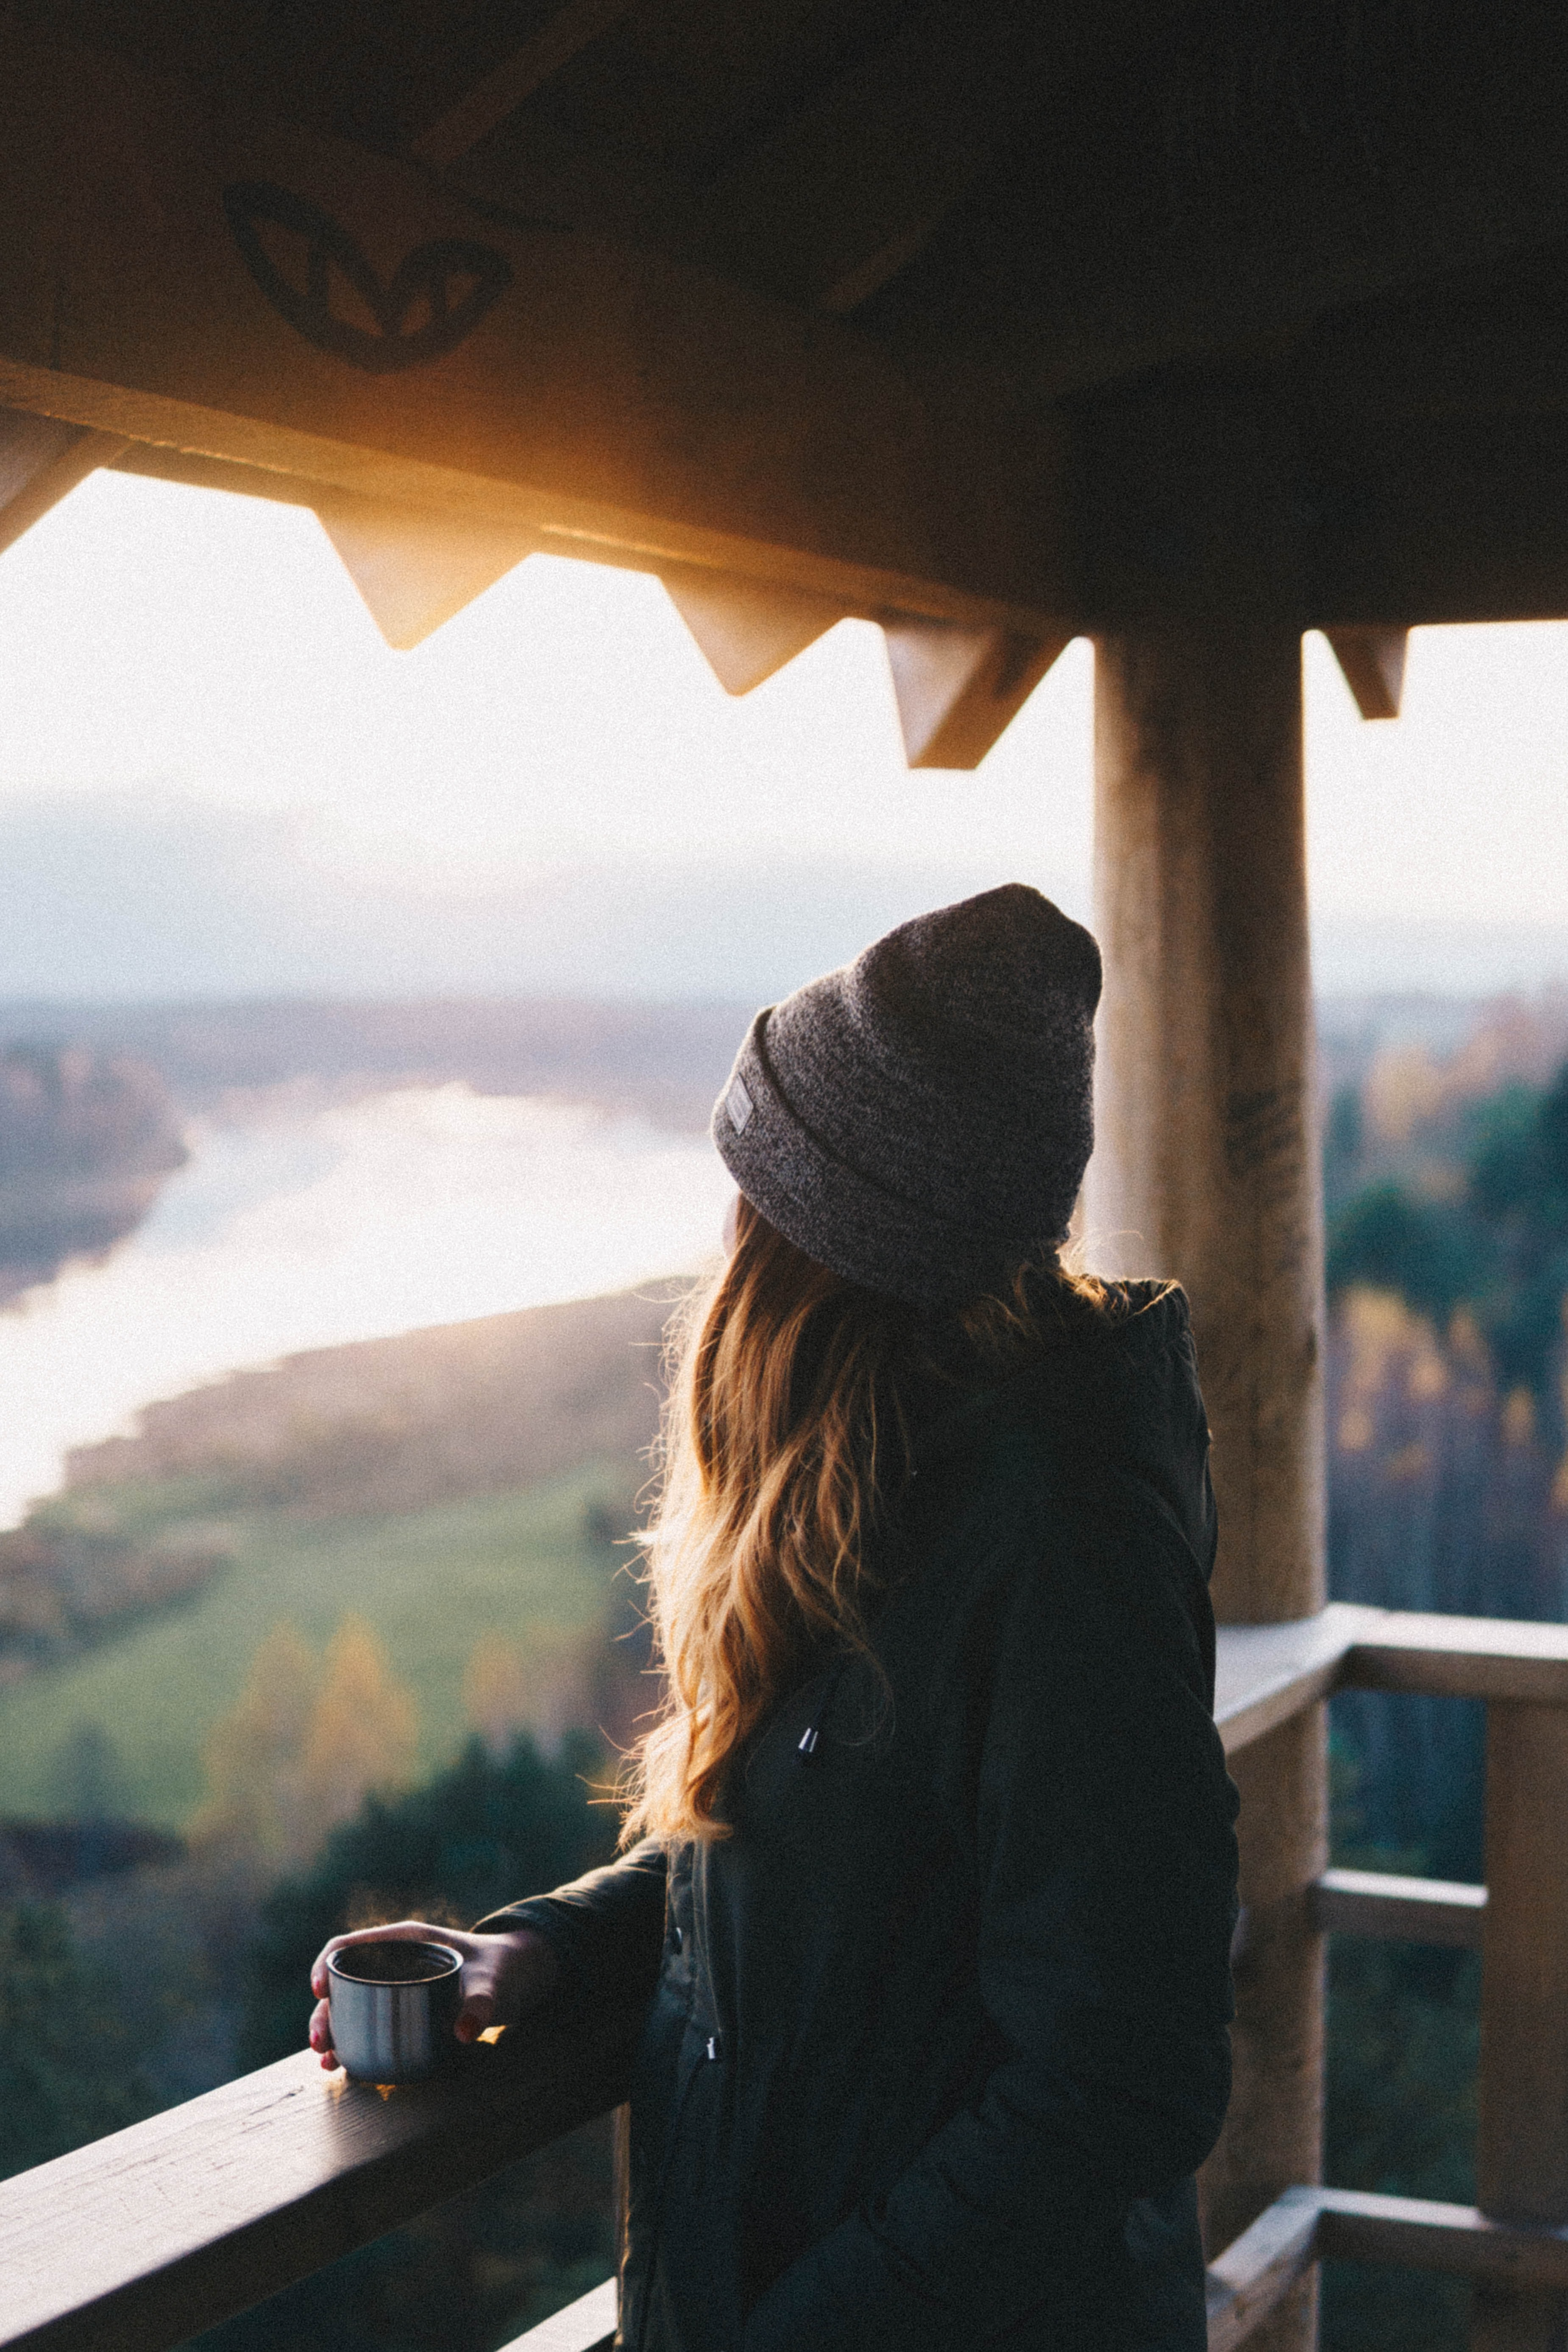 Another day without you–    And what am I suppose to do? Be happy and rejoice, when I ache and long for you? Hear my echoing voice:  my Love, I feel you. I miss you. And I love you so. I pray God takes care of you. For now I have to go.     stories